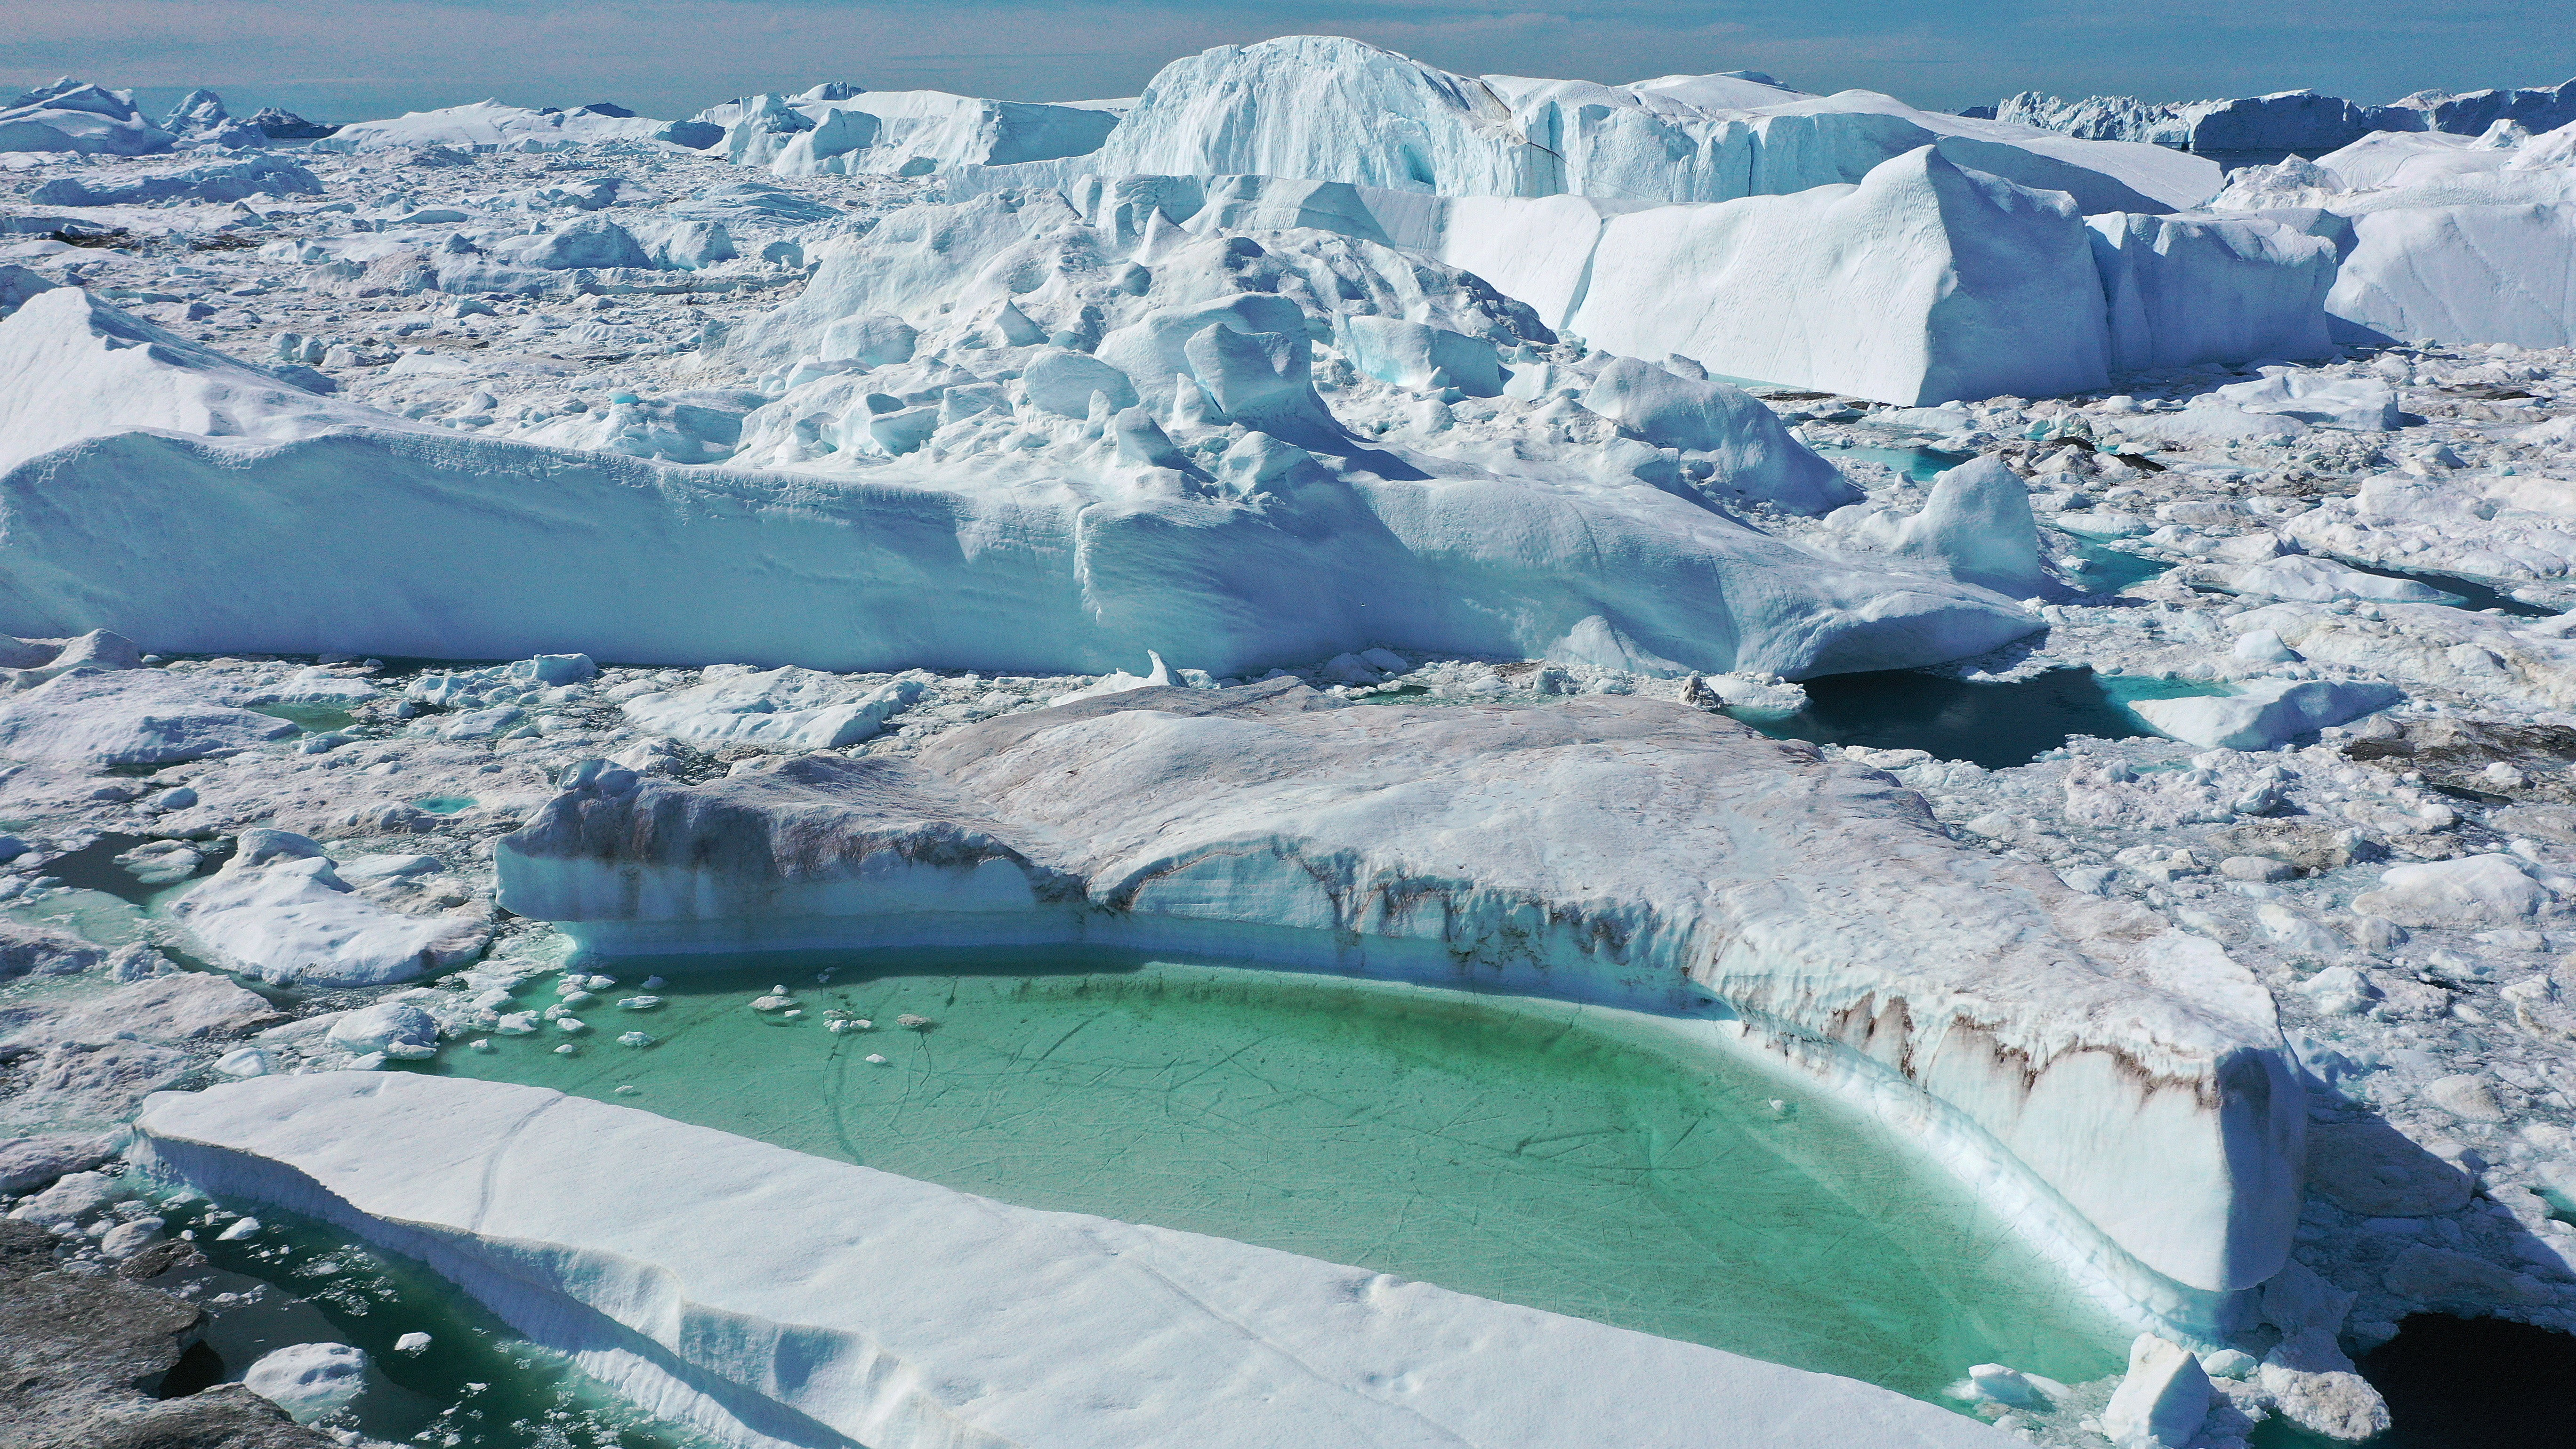 Geoengineering Wouldn't Be Enough To Stop Greenland From Melting